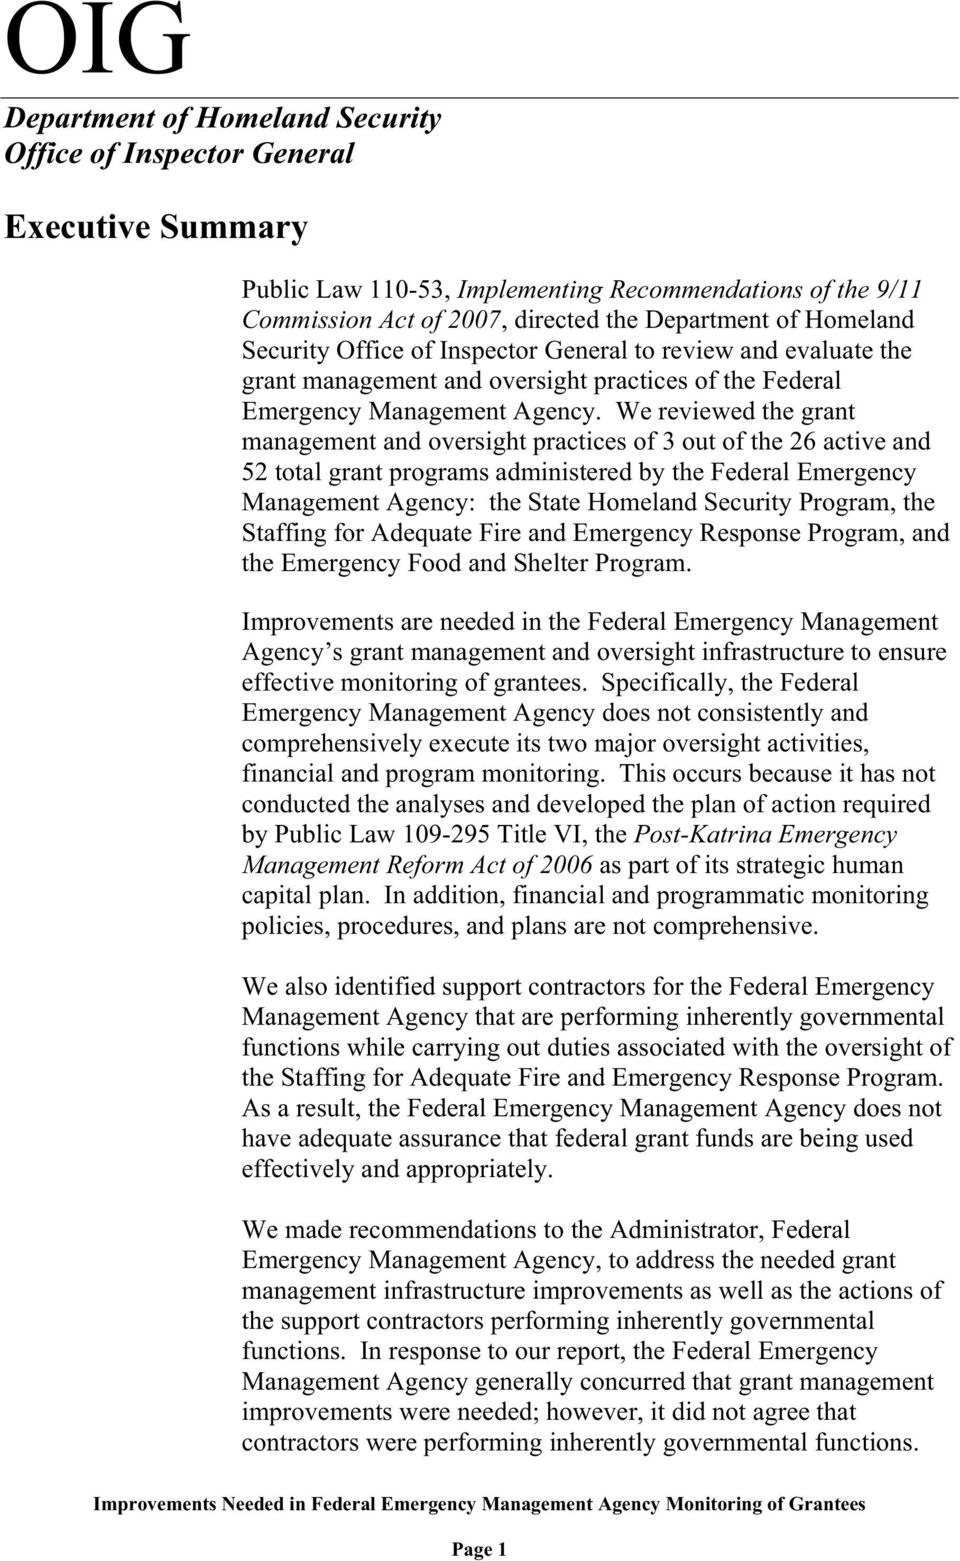 We reviewed the grant management and oversight practices of 3 out of the 26 active and 52 total grant programs administered by the Federal Emergency Management Agency: the State Homeland Security